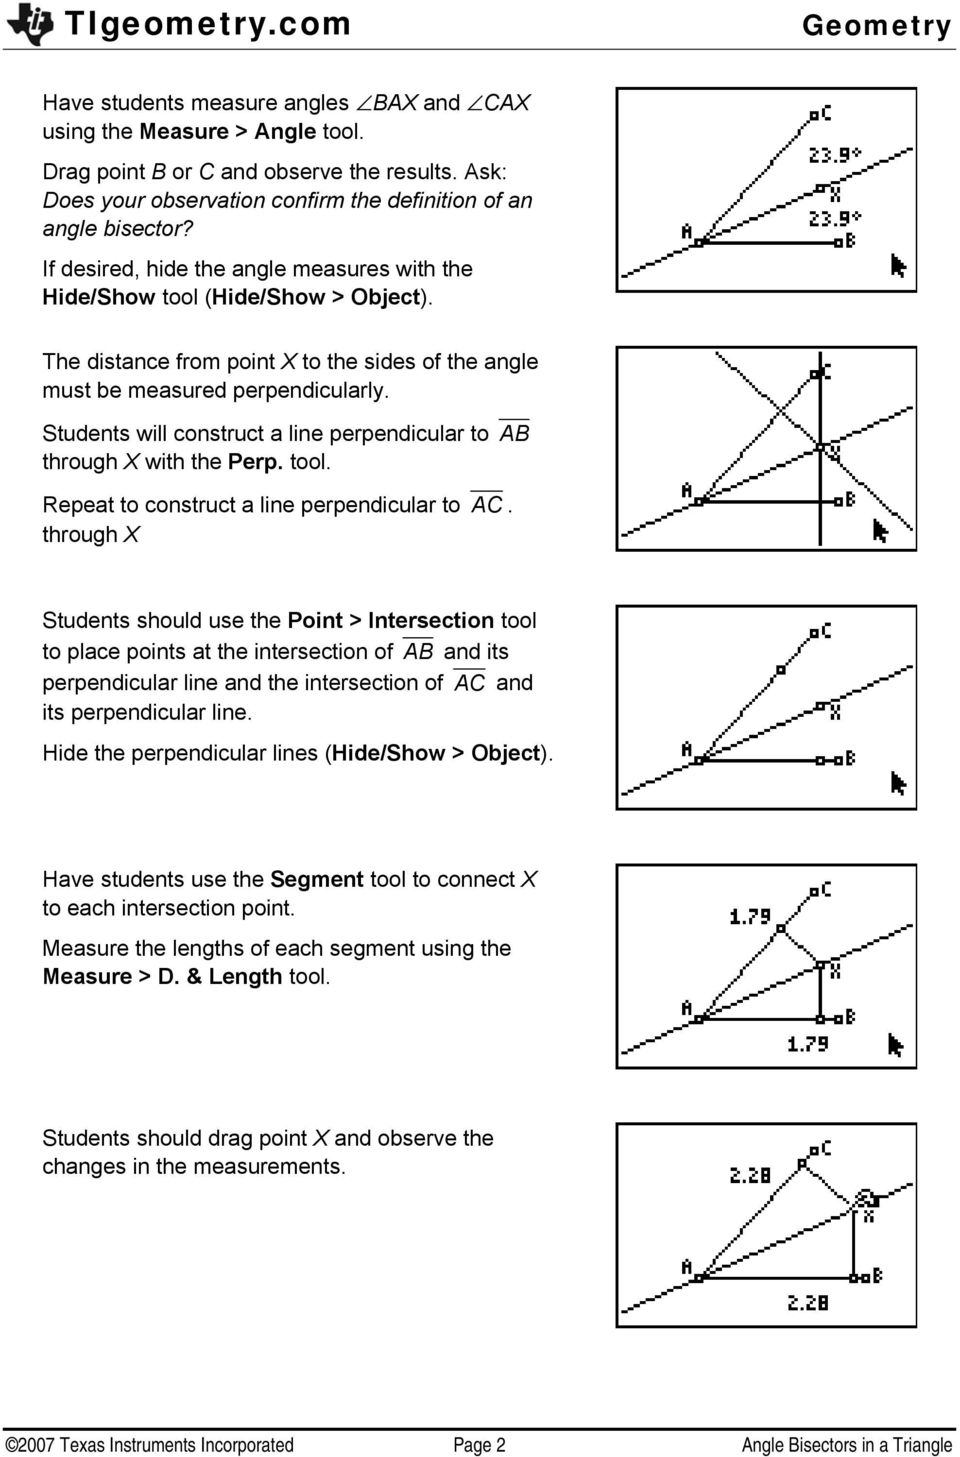 Students will construct a line perpendicular to AB through X with the Perp. tool. Repeat to construct a line perpendicular to AC.